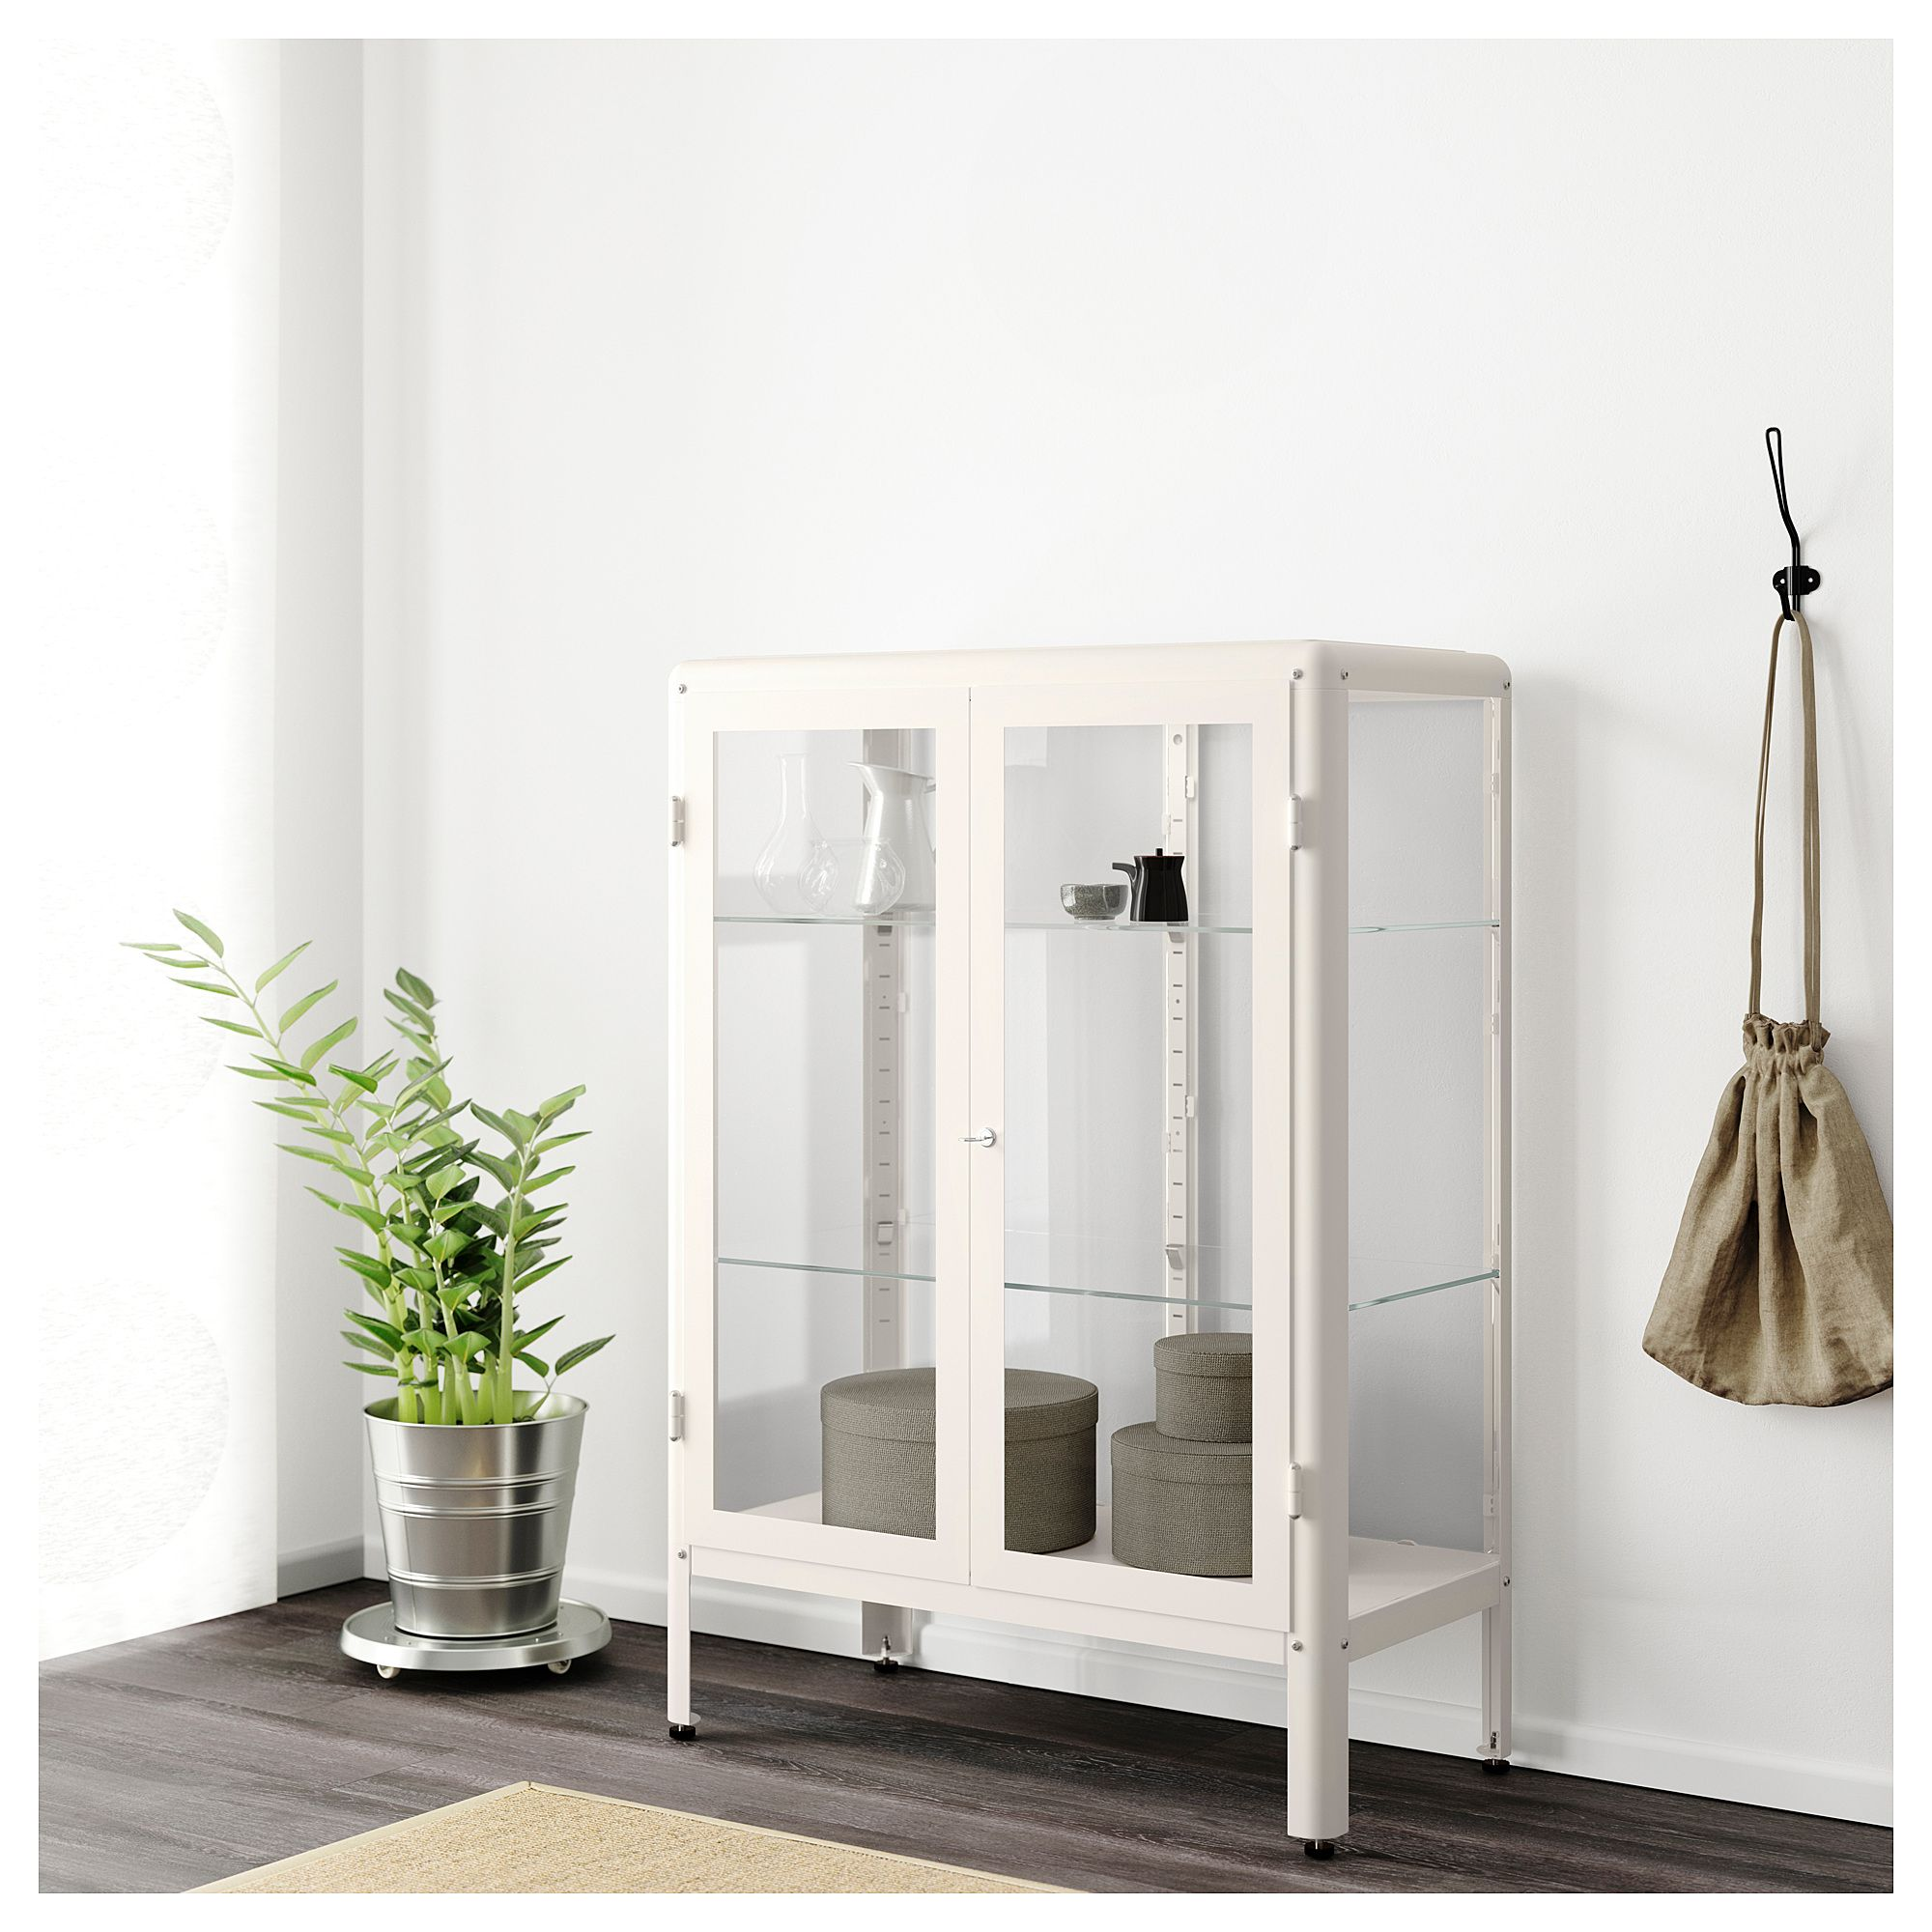 Furniture & Home Furnishings Find Your Inspiration